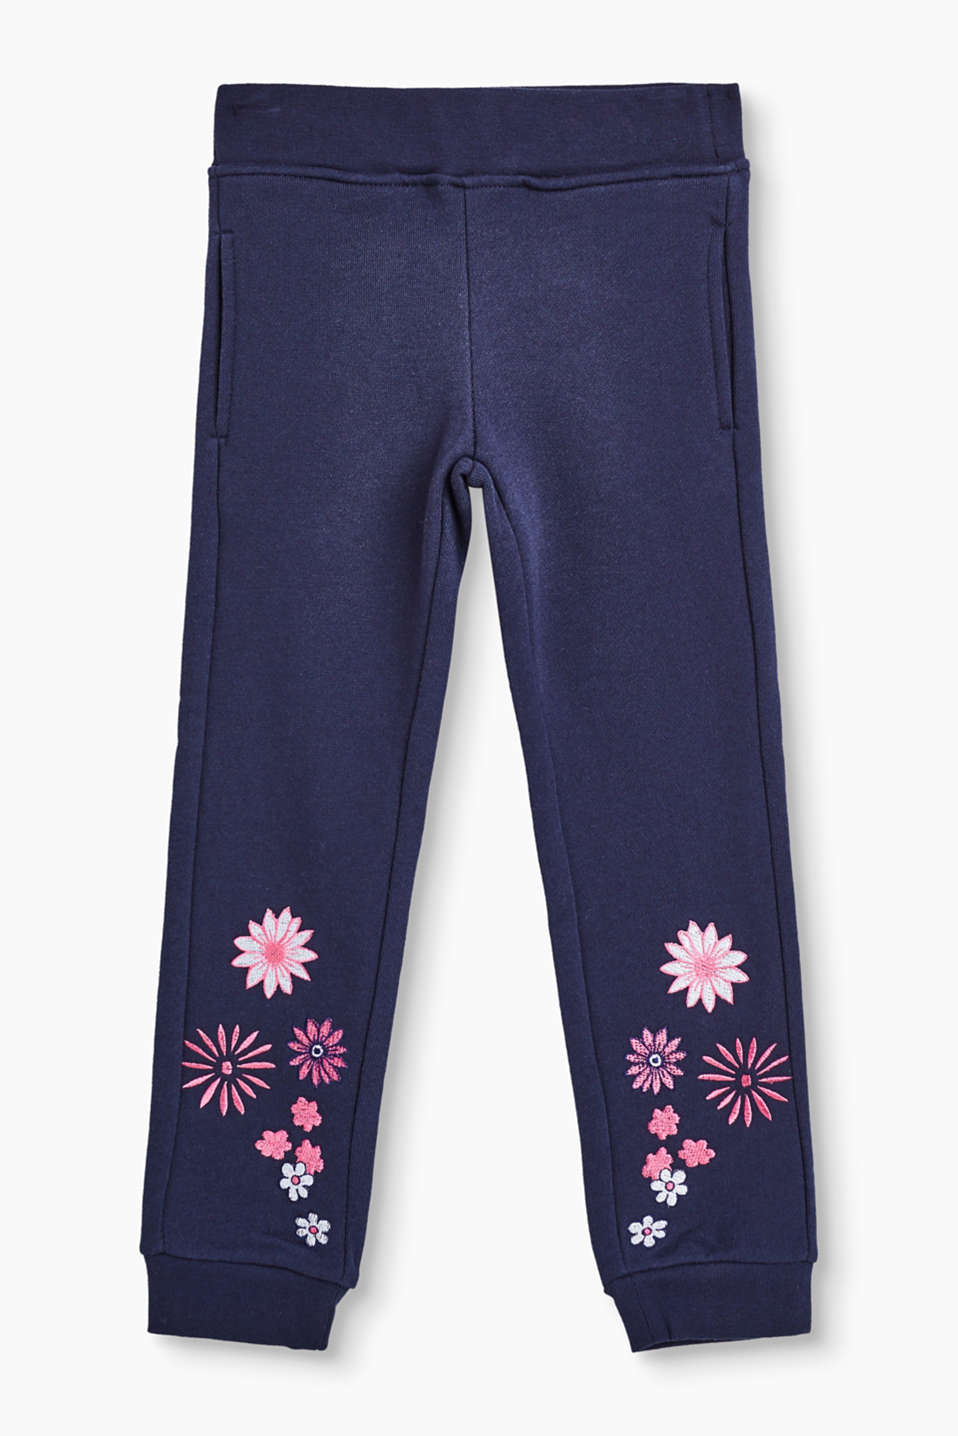 Pure cotton tracksuit bottoms decorated with flowers